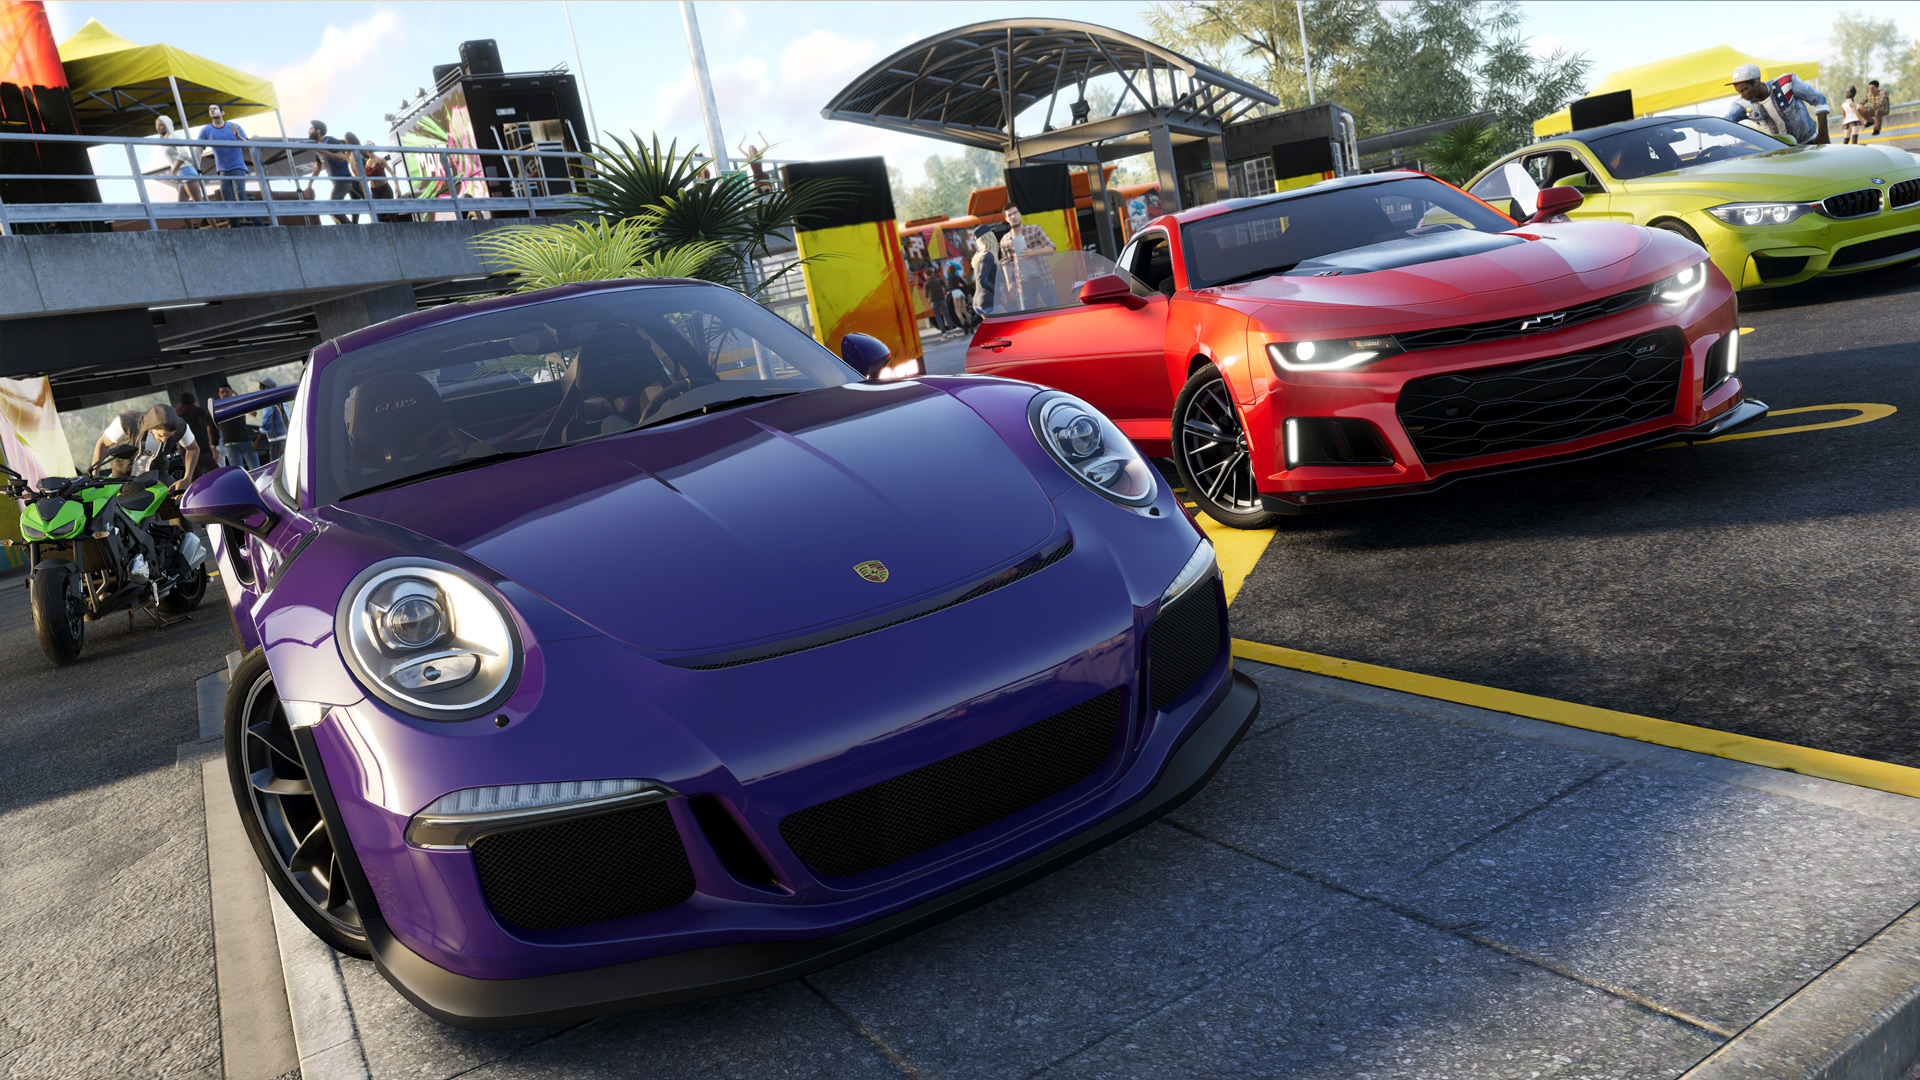 The Crew 2 Launches in March, Pre-Order Details Arrive